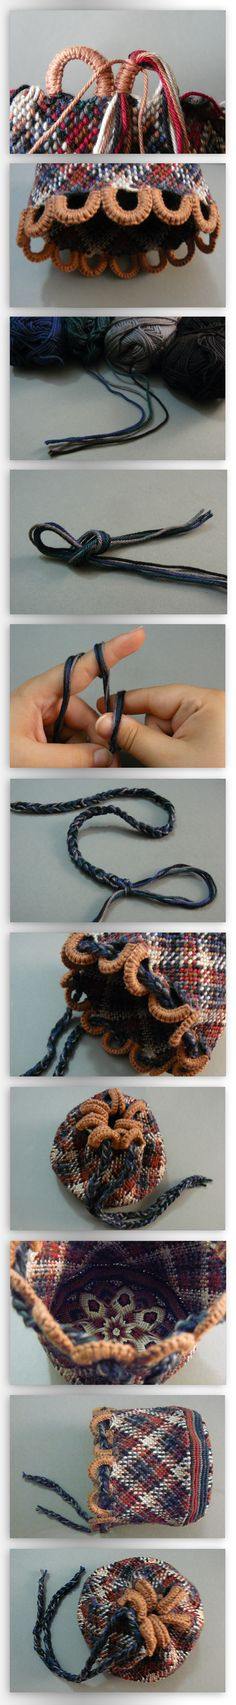 pouch_tutorial_part_v__cord_and_finished_pouch__by_nimuae-d5bcdmy.png (600×4335)